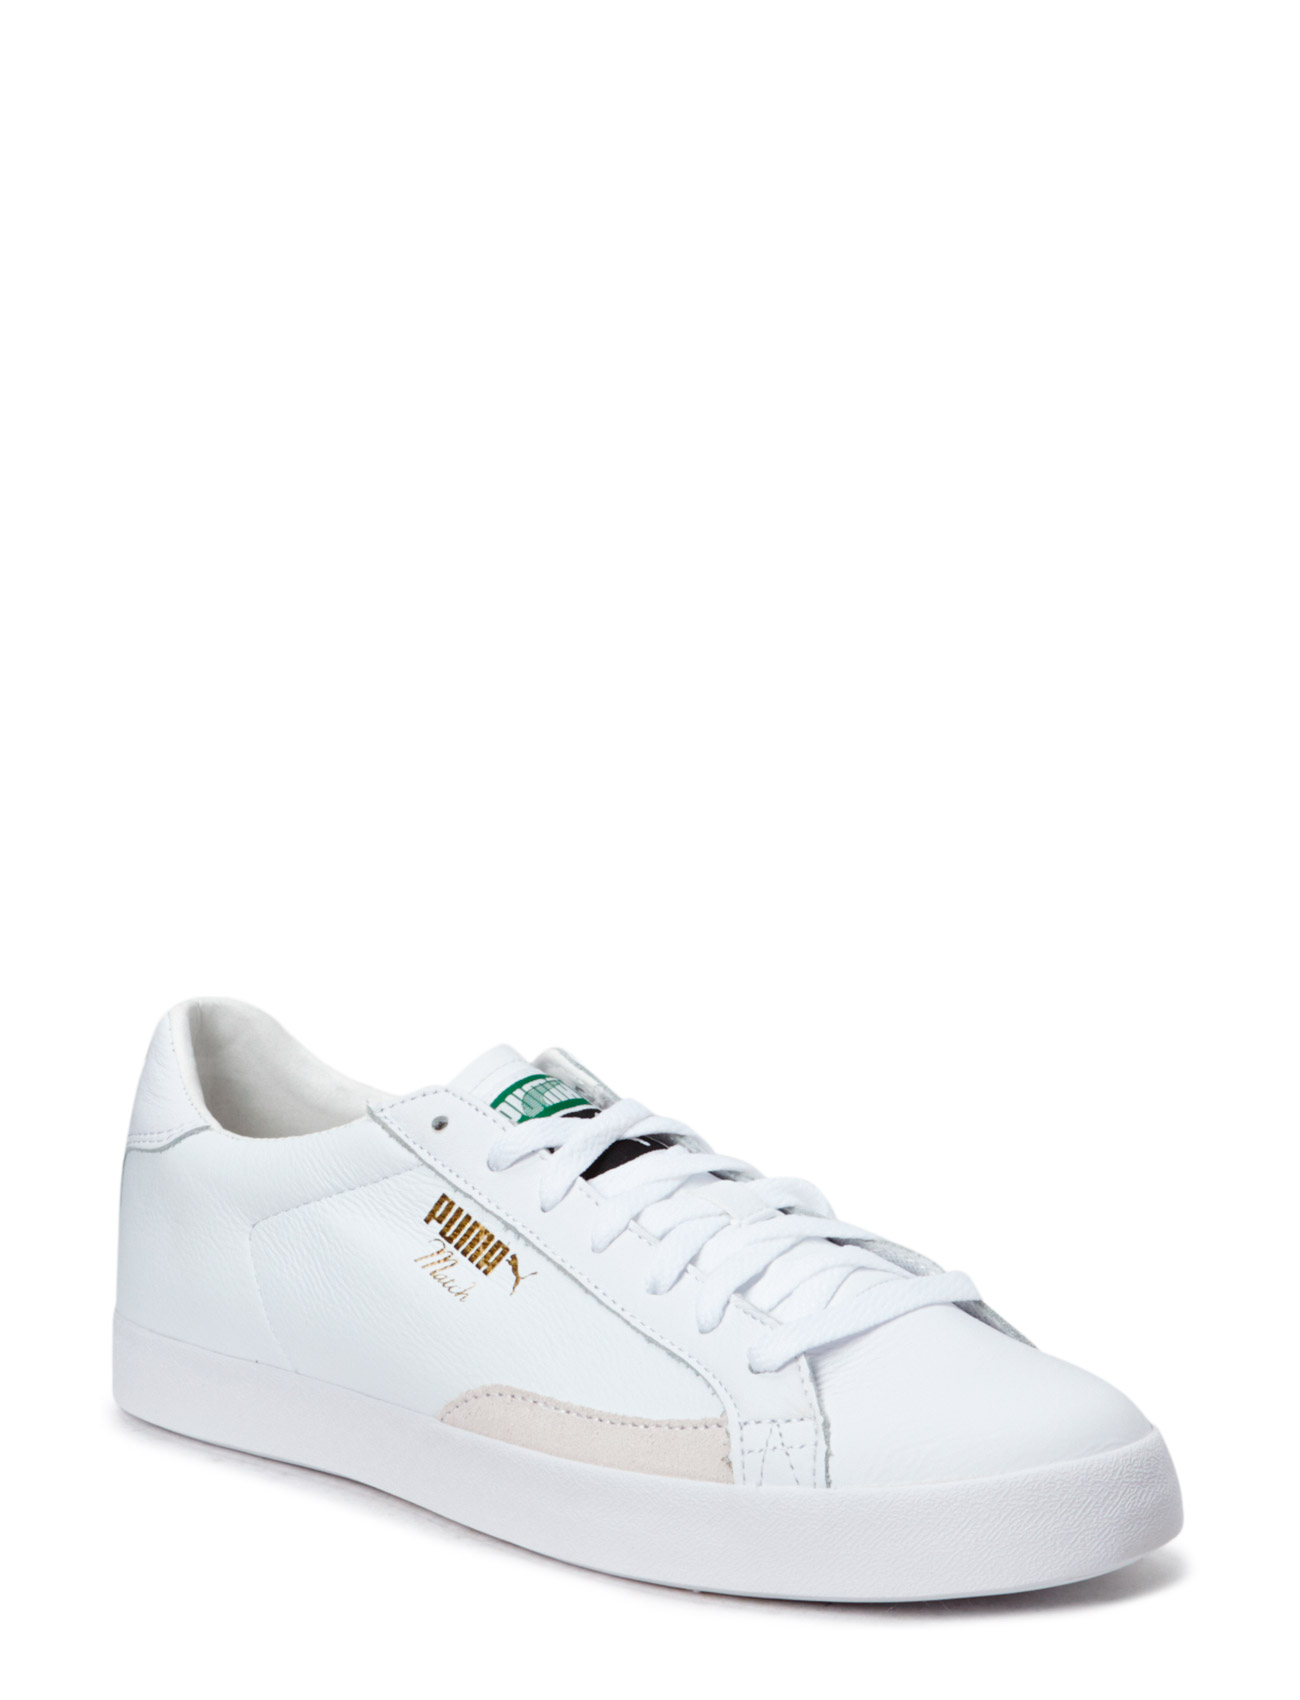 puma outlet danmark